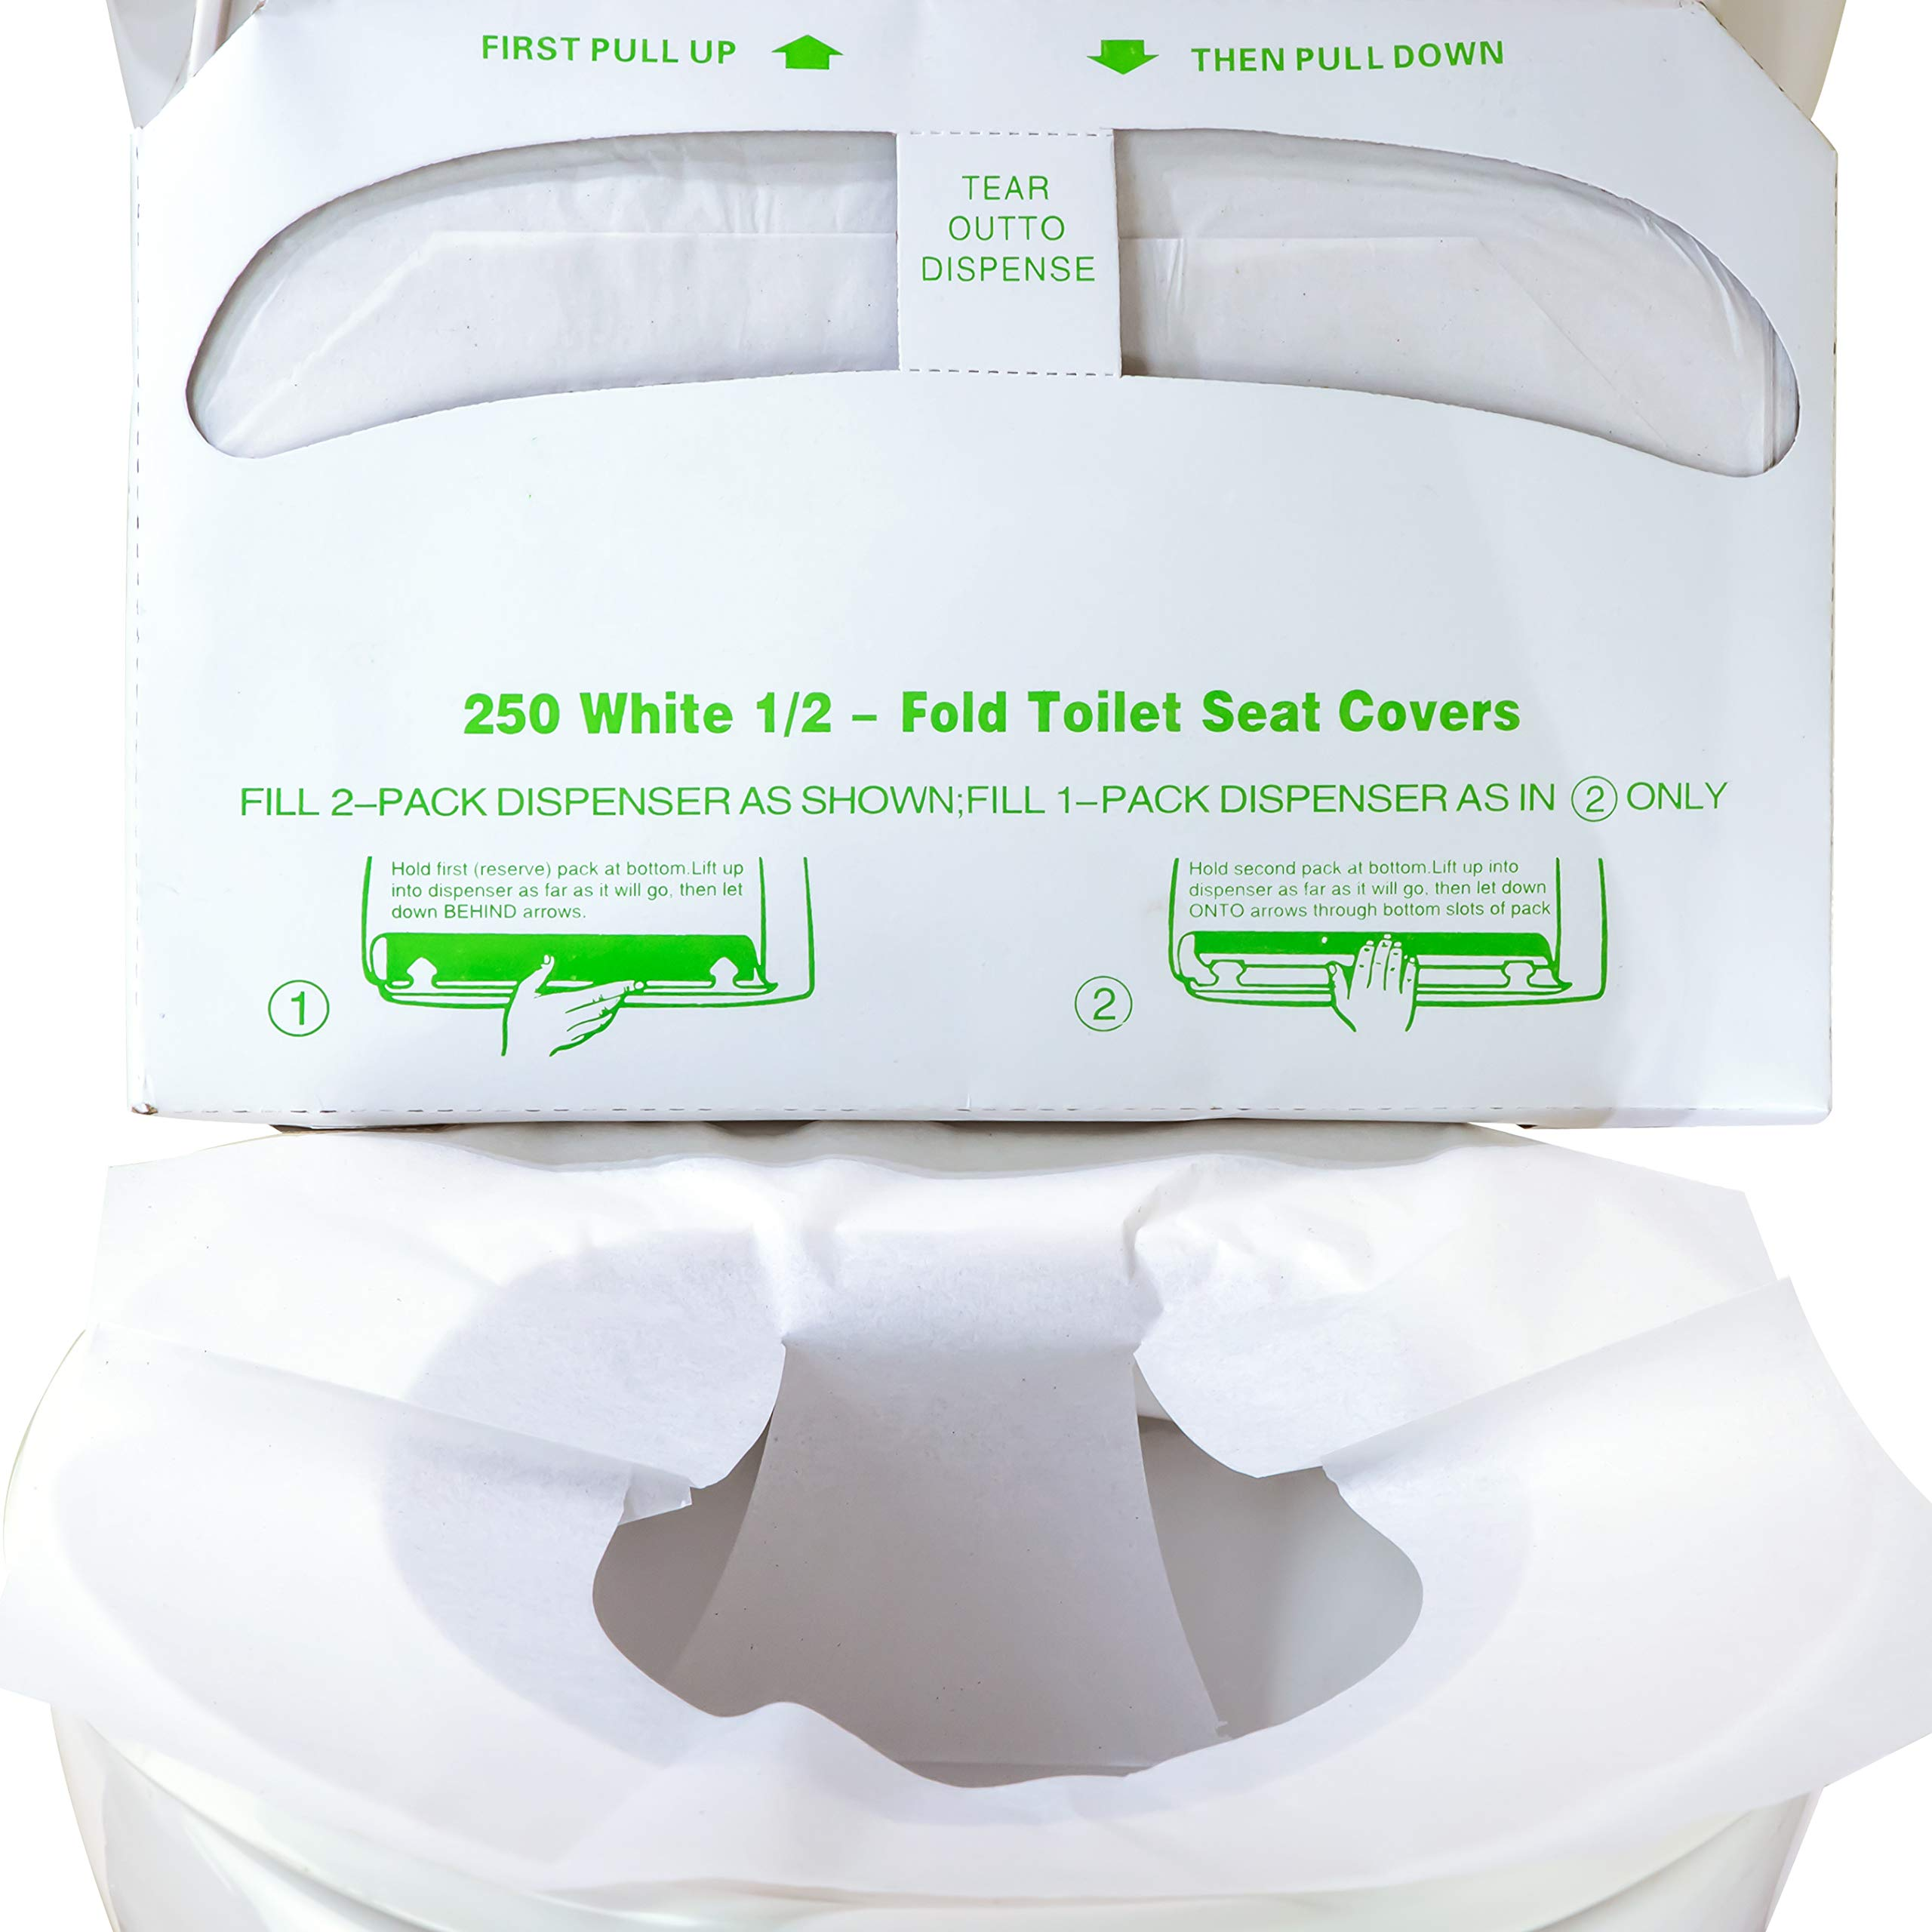 Biodegradable Half-Fold Toilet Seat Covers 500 Pk. Self-Flushing, Disposable Potty Papers Keep Toilets Clean and Family Healthy. Sanitary Paper Safety Covers for Commercial, Home, Travel and Kids Use by Mop Mob